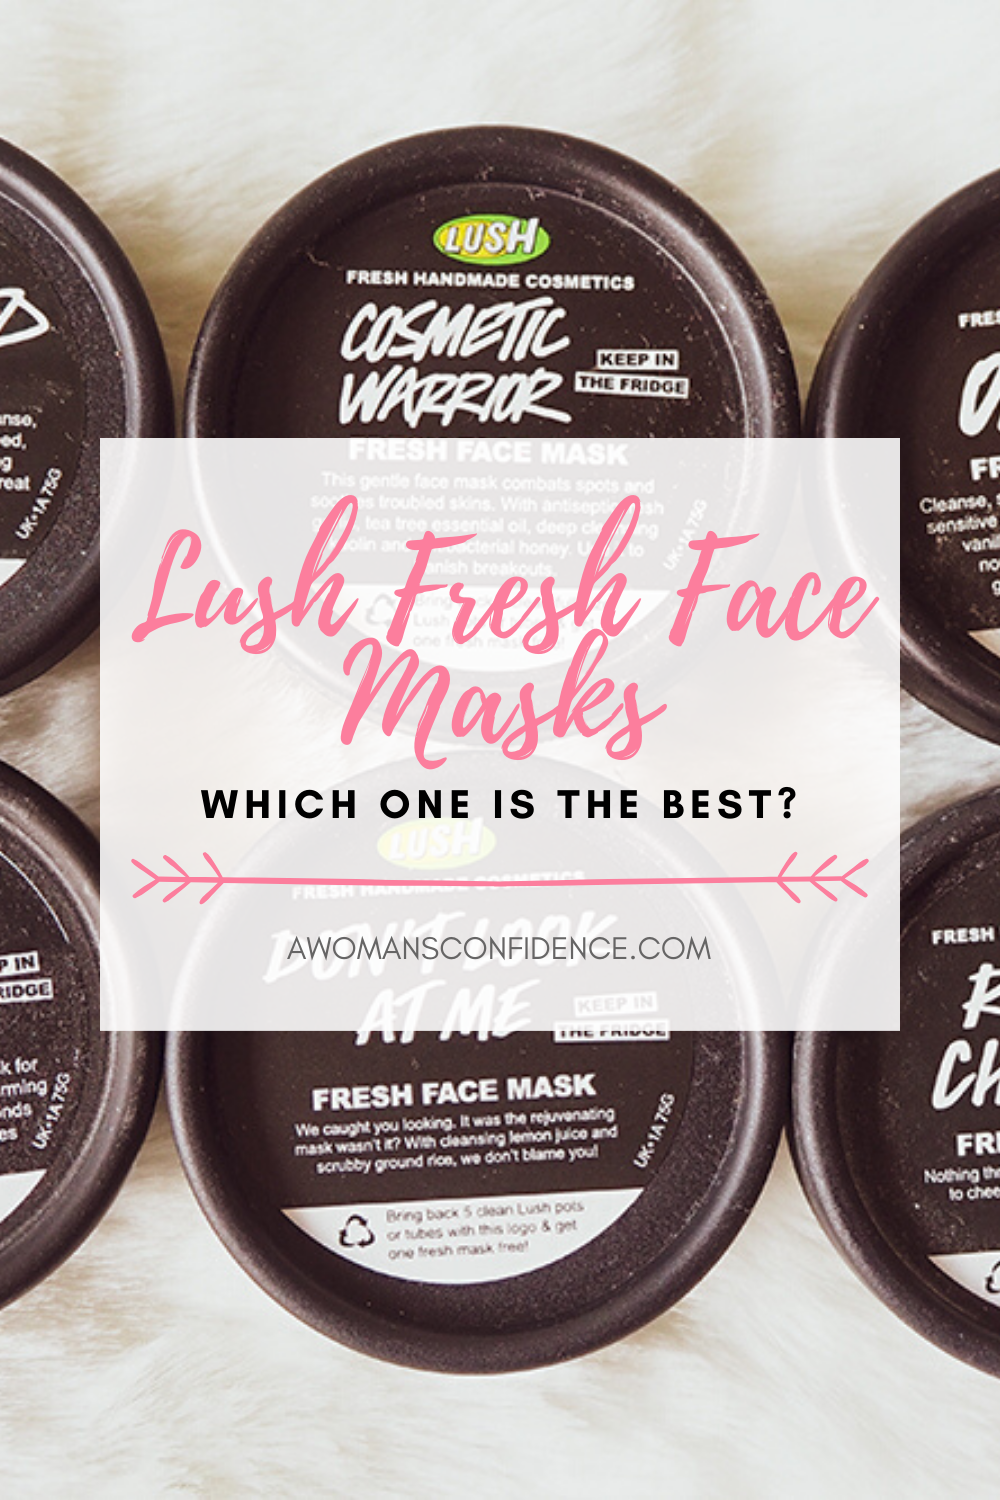 Lush Fresh Face Masks image